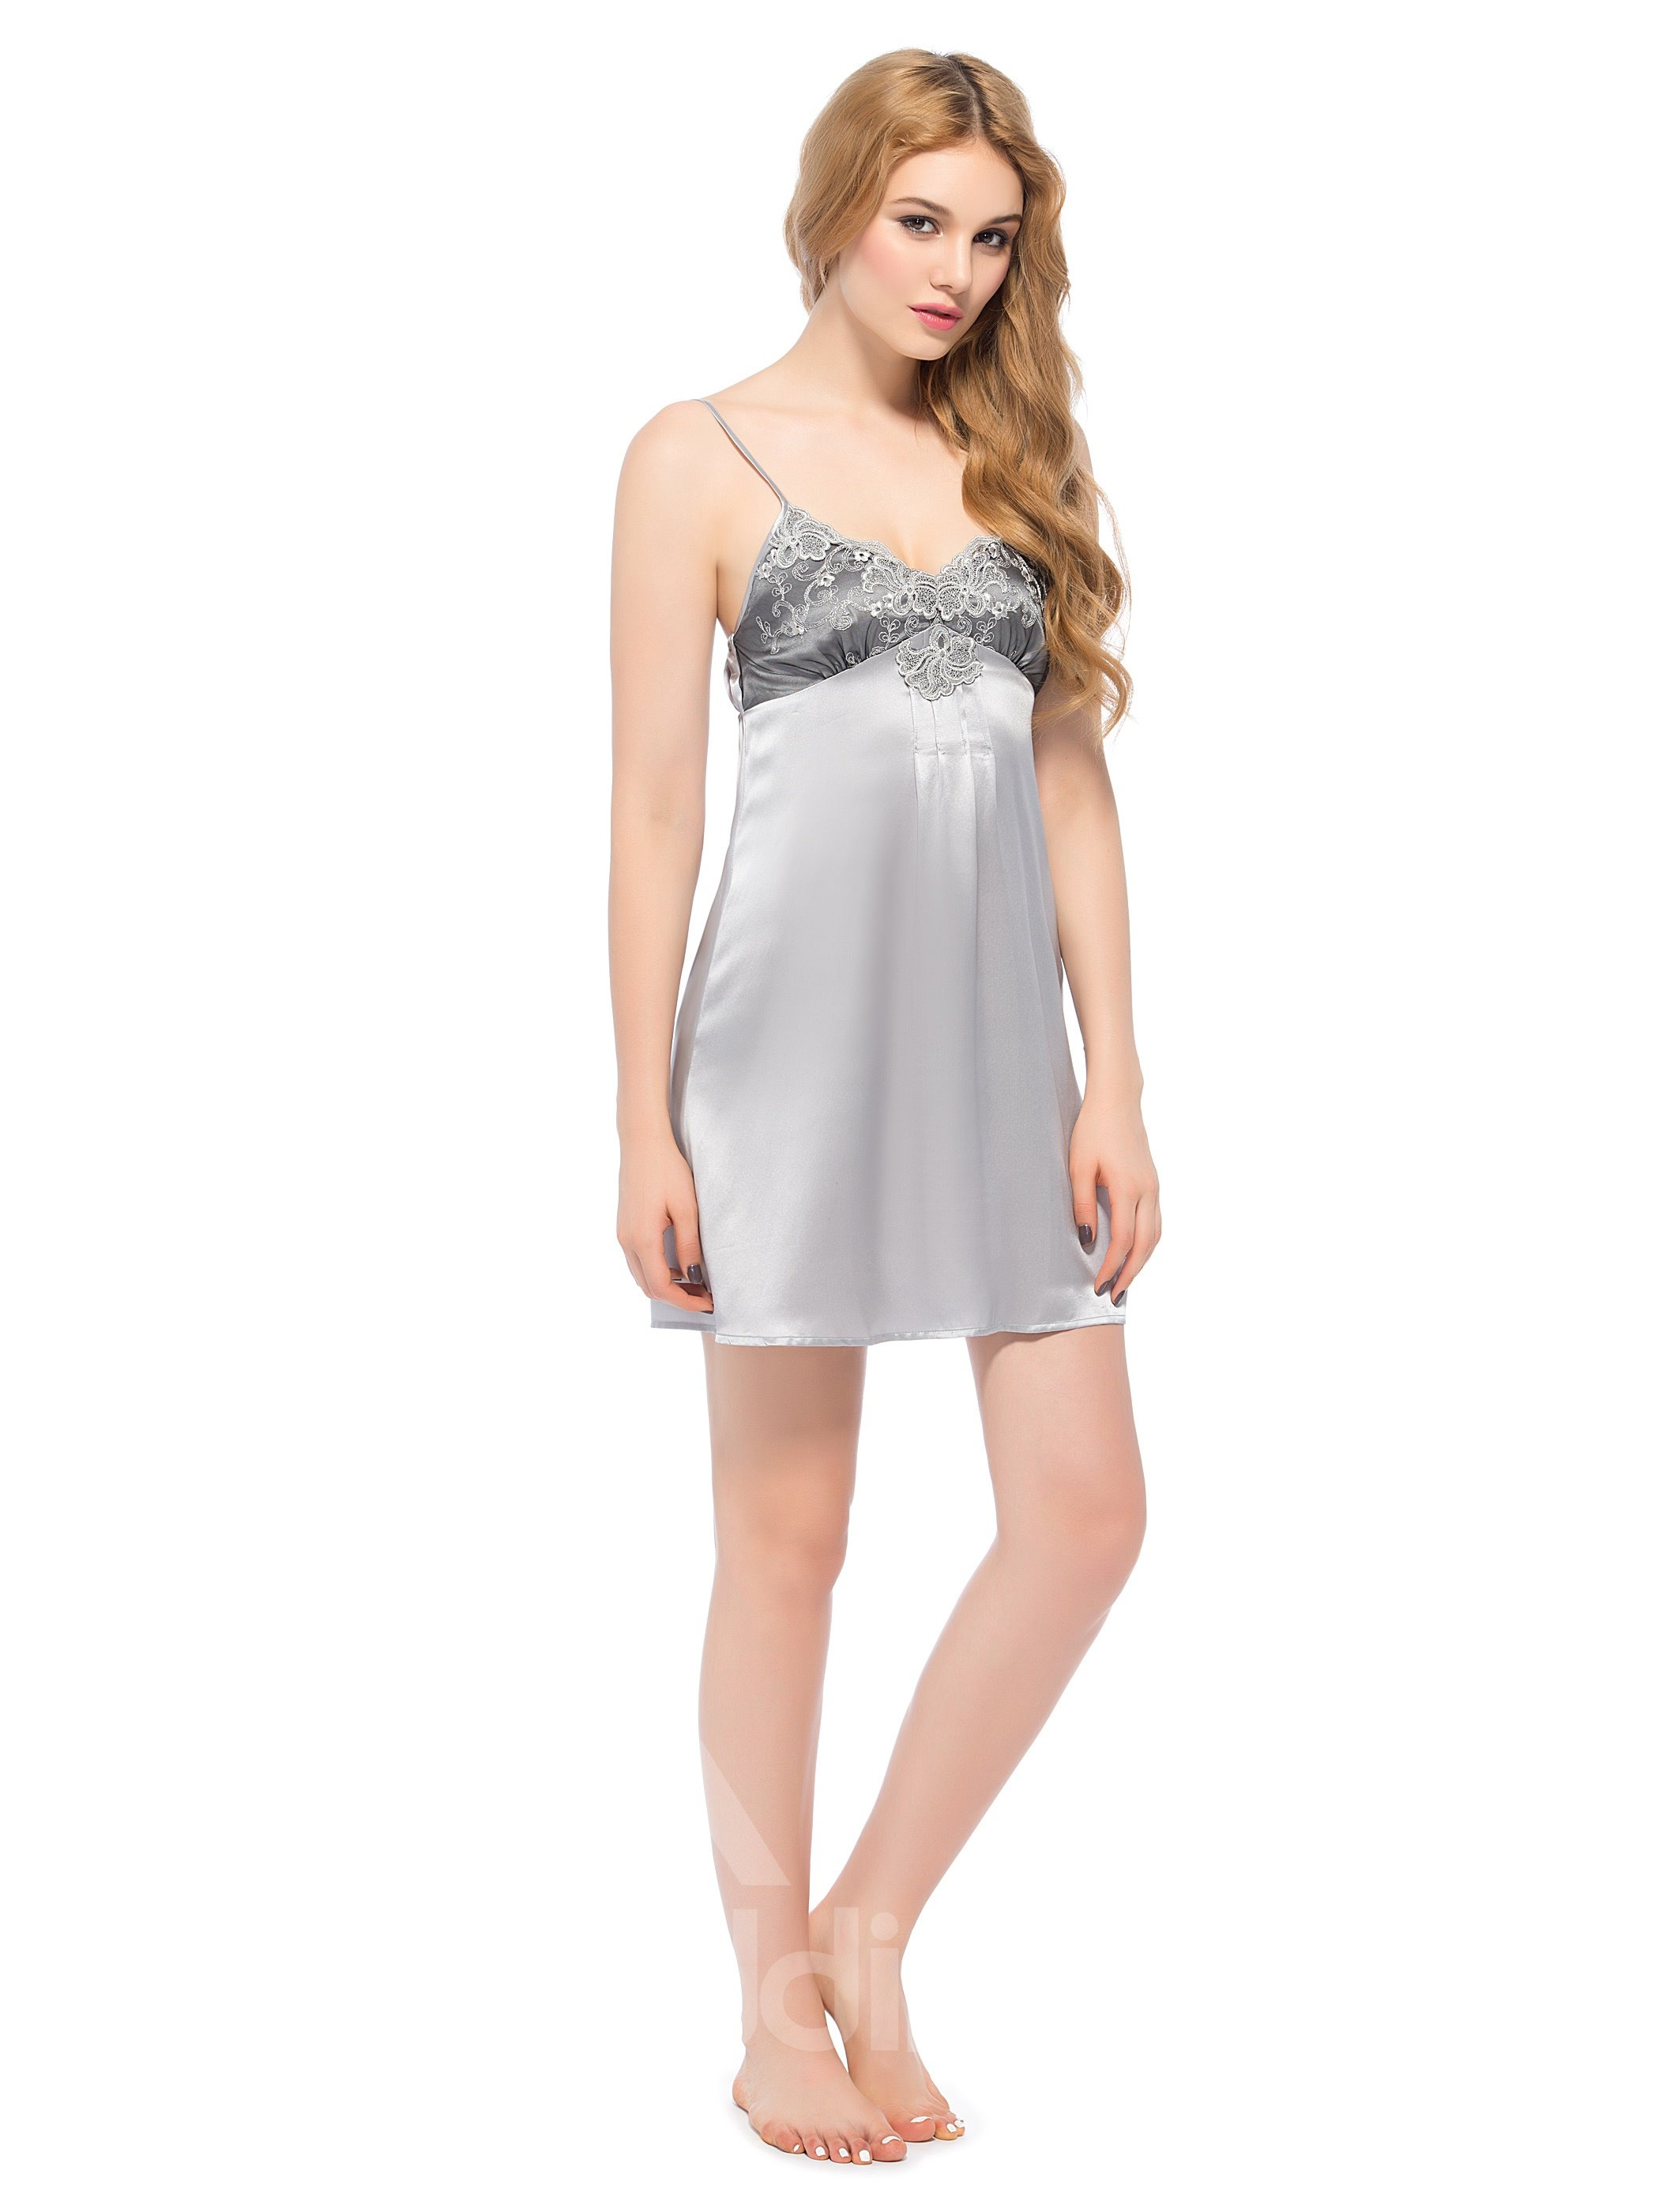 Lace Bust Flower Embroidery Spaghetti Strap Gray Silk Chemise